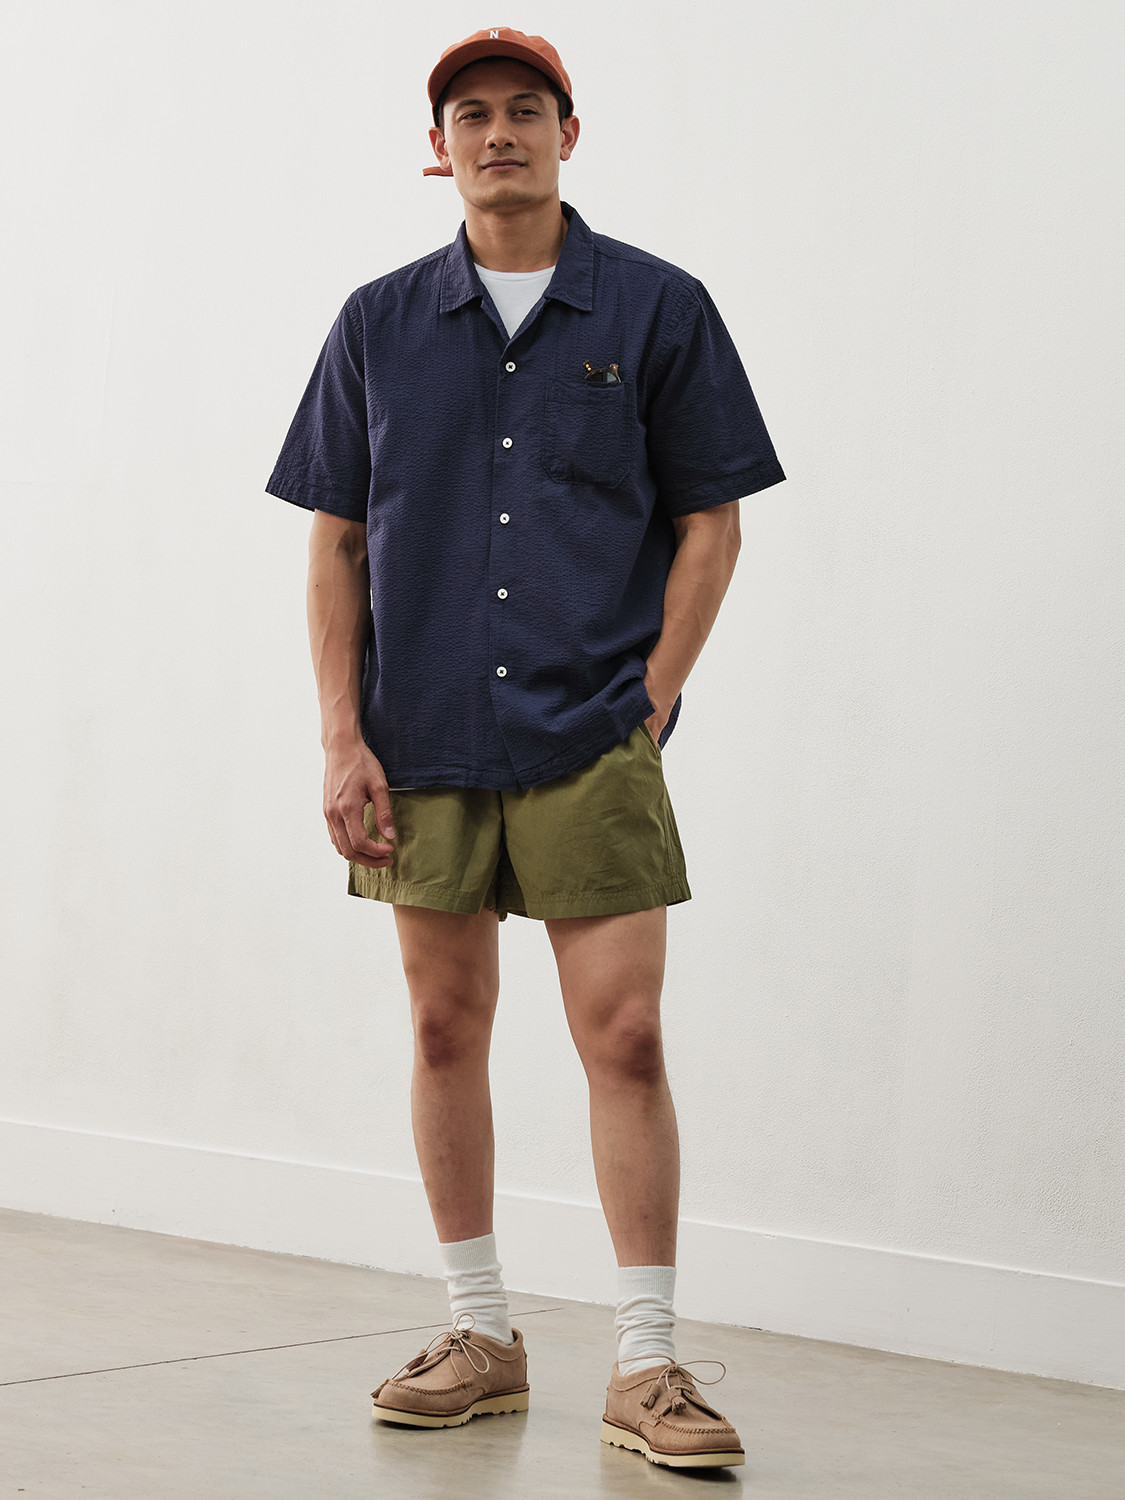 Men's outfit idea for 2021 with navy short-sleeved plain shirt, white crew neck t-shirt, green cotton shorts, neutral moccasins / wallabees. Suitable for spring and summer.